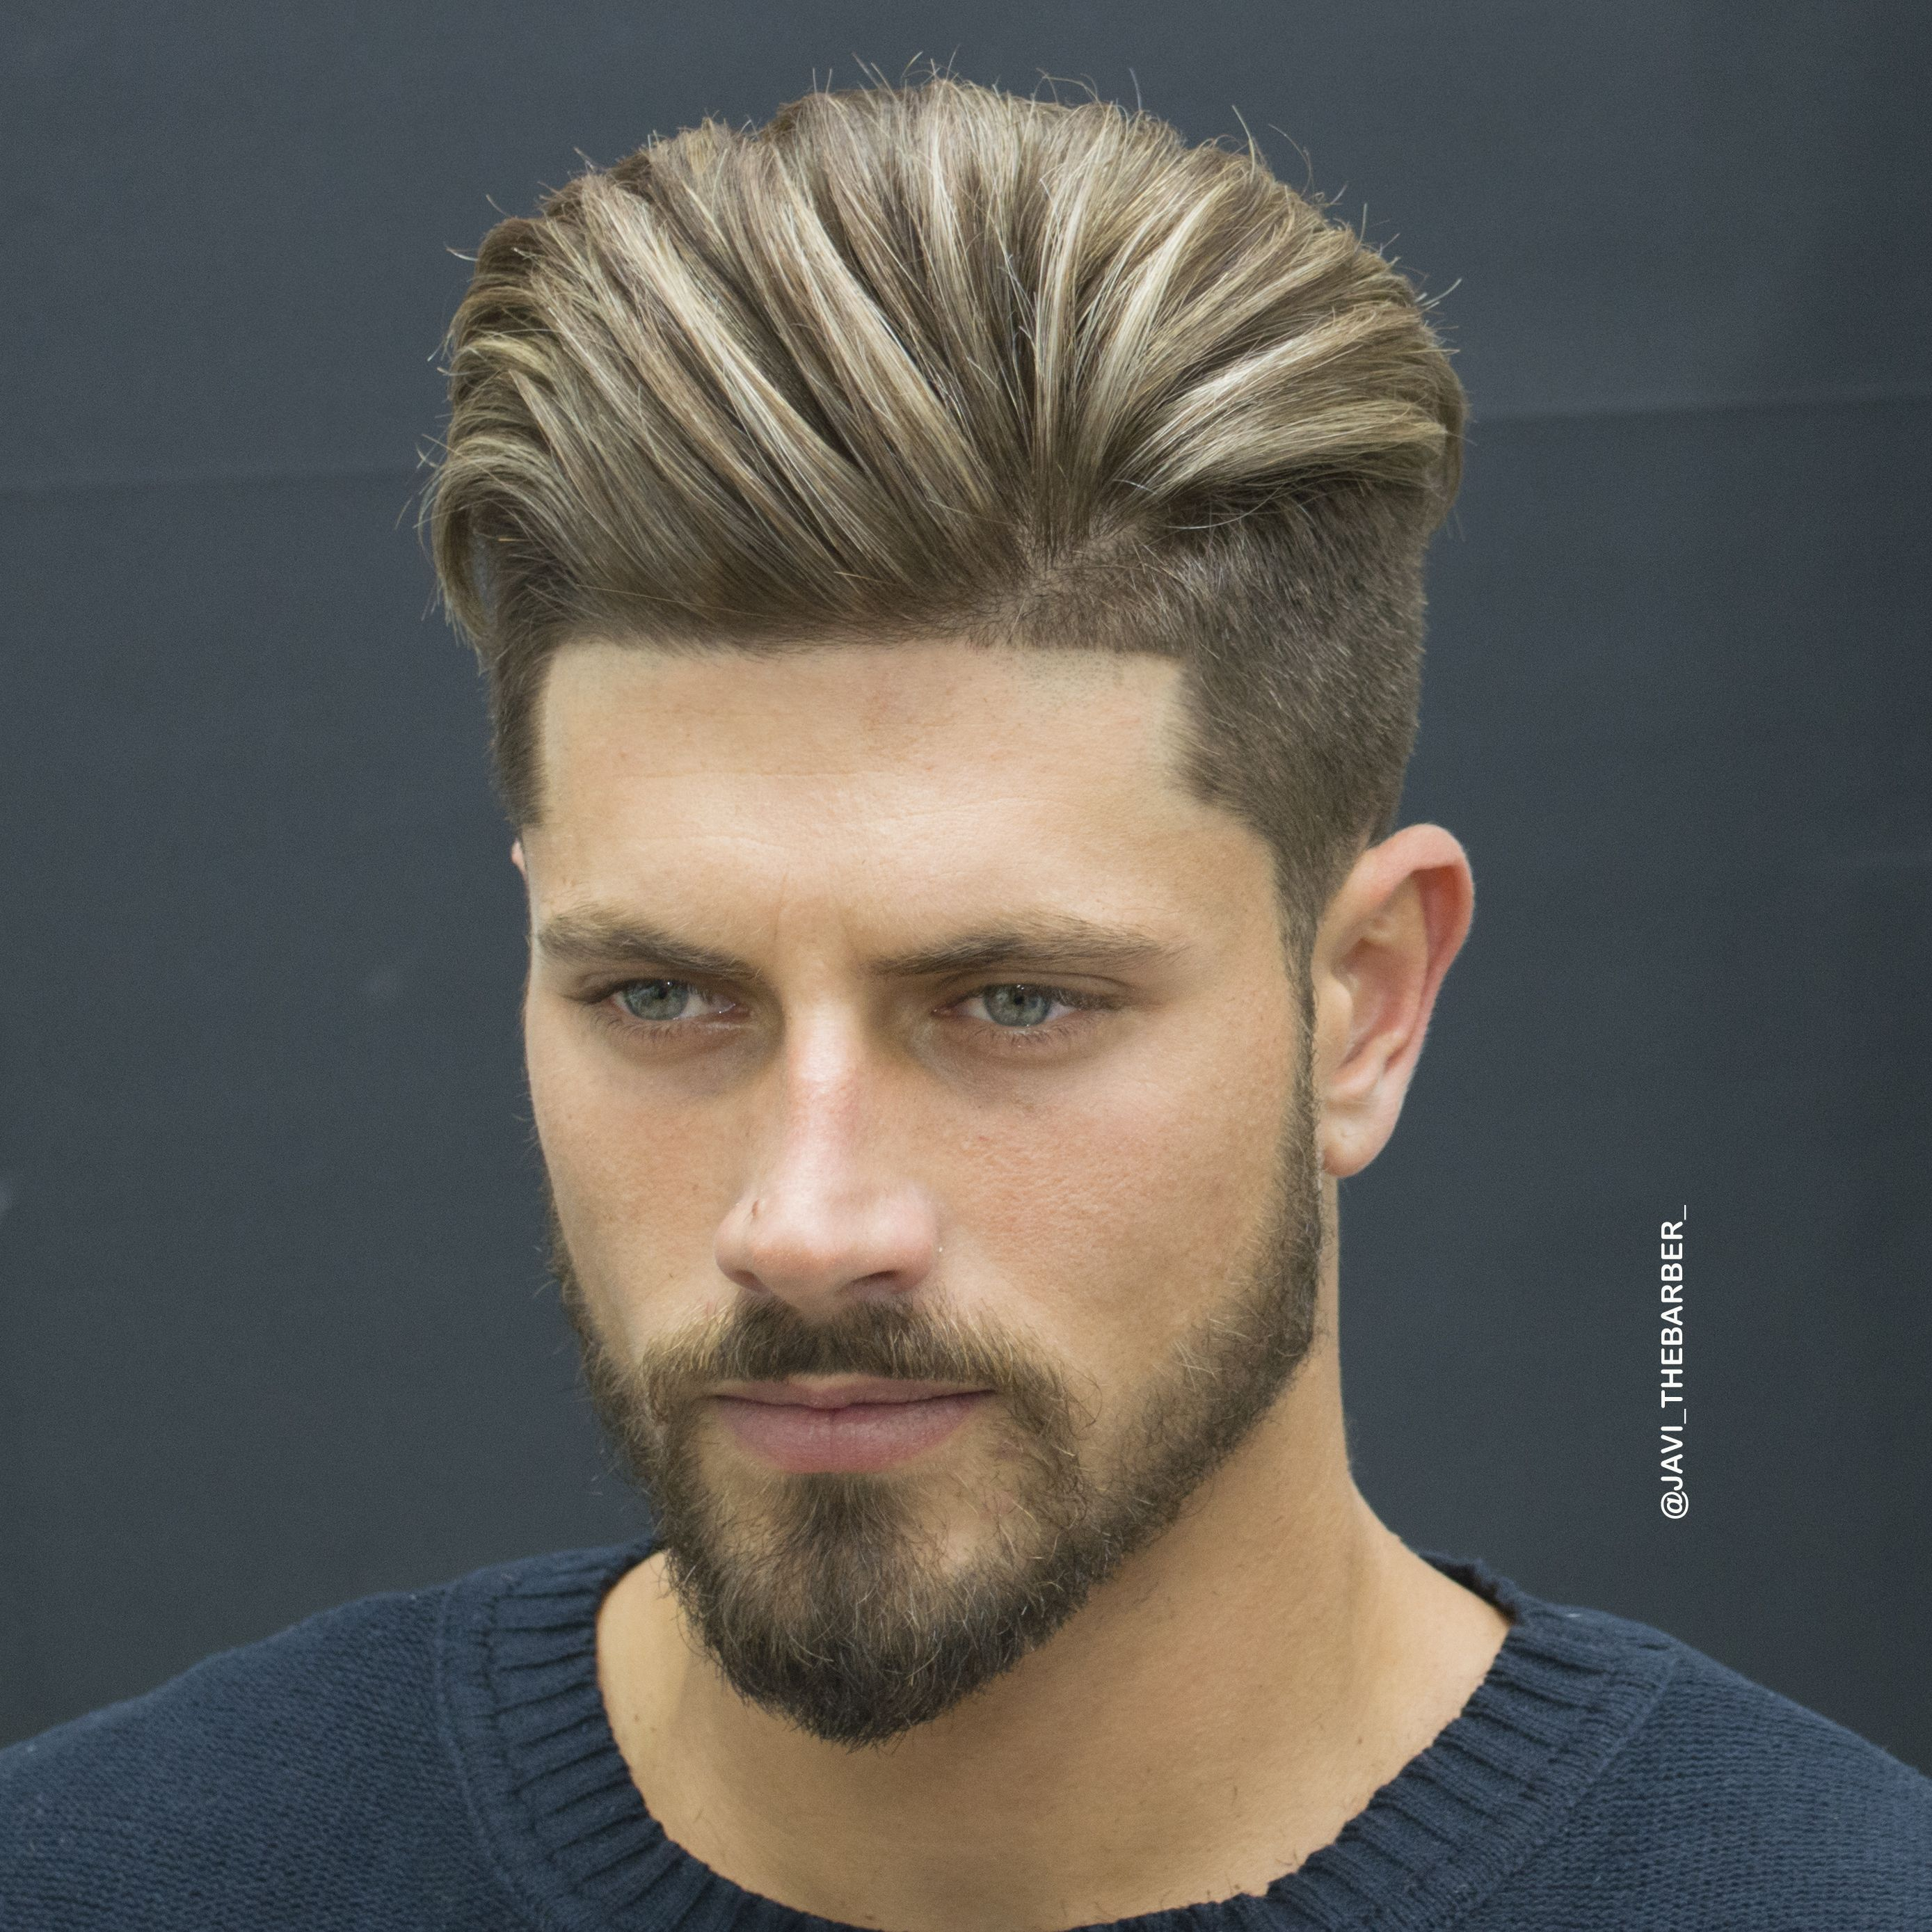 100 Men S Hairstyles Cool Haircuts 2018 Update: Cool Hairstyles For Men, Hair